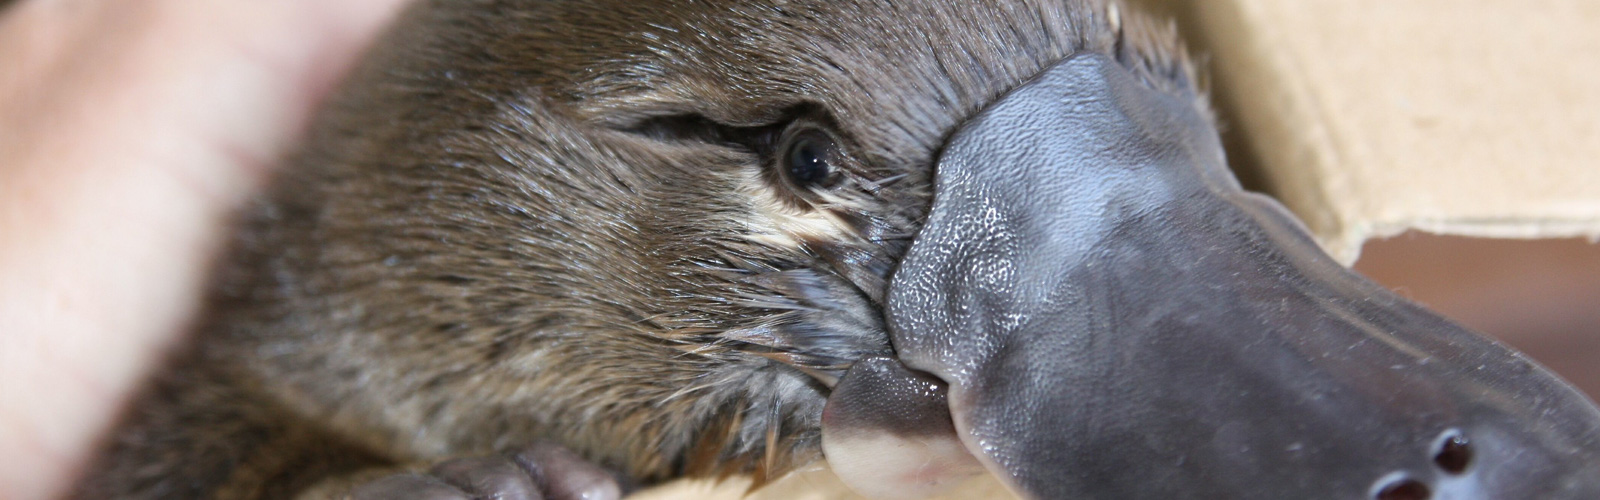 Shy, cute and endangered, Platypus. Photo credit: OEH